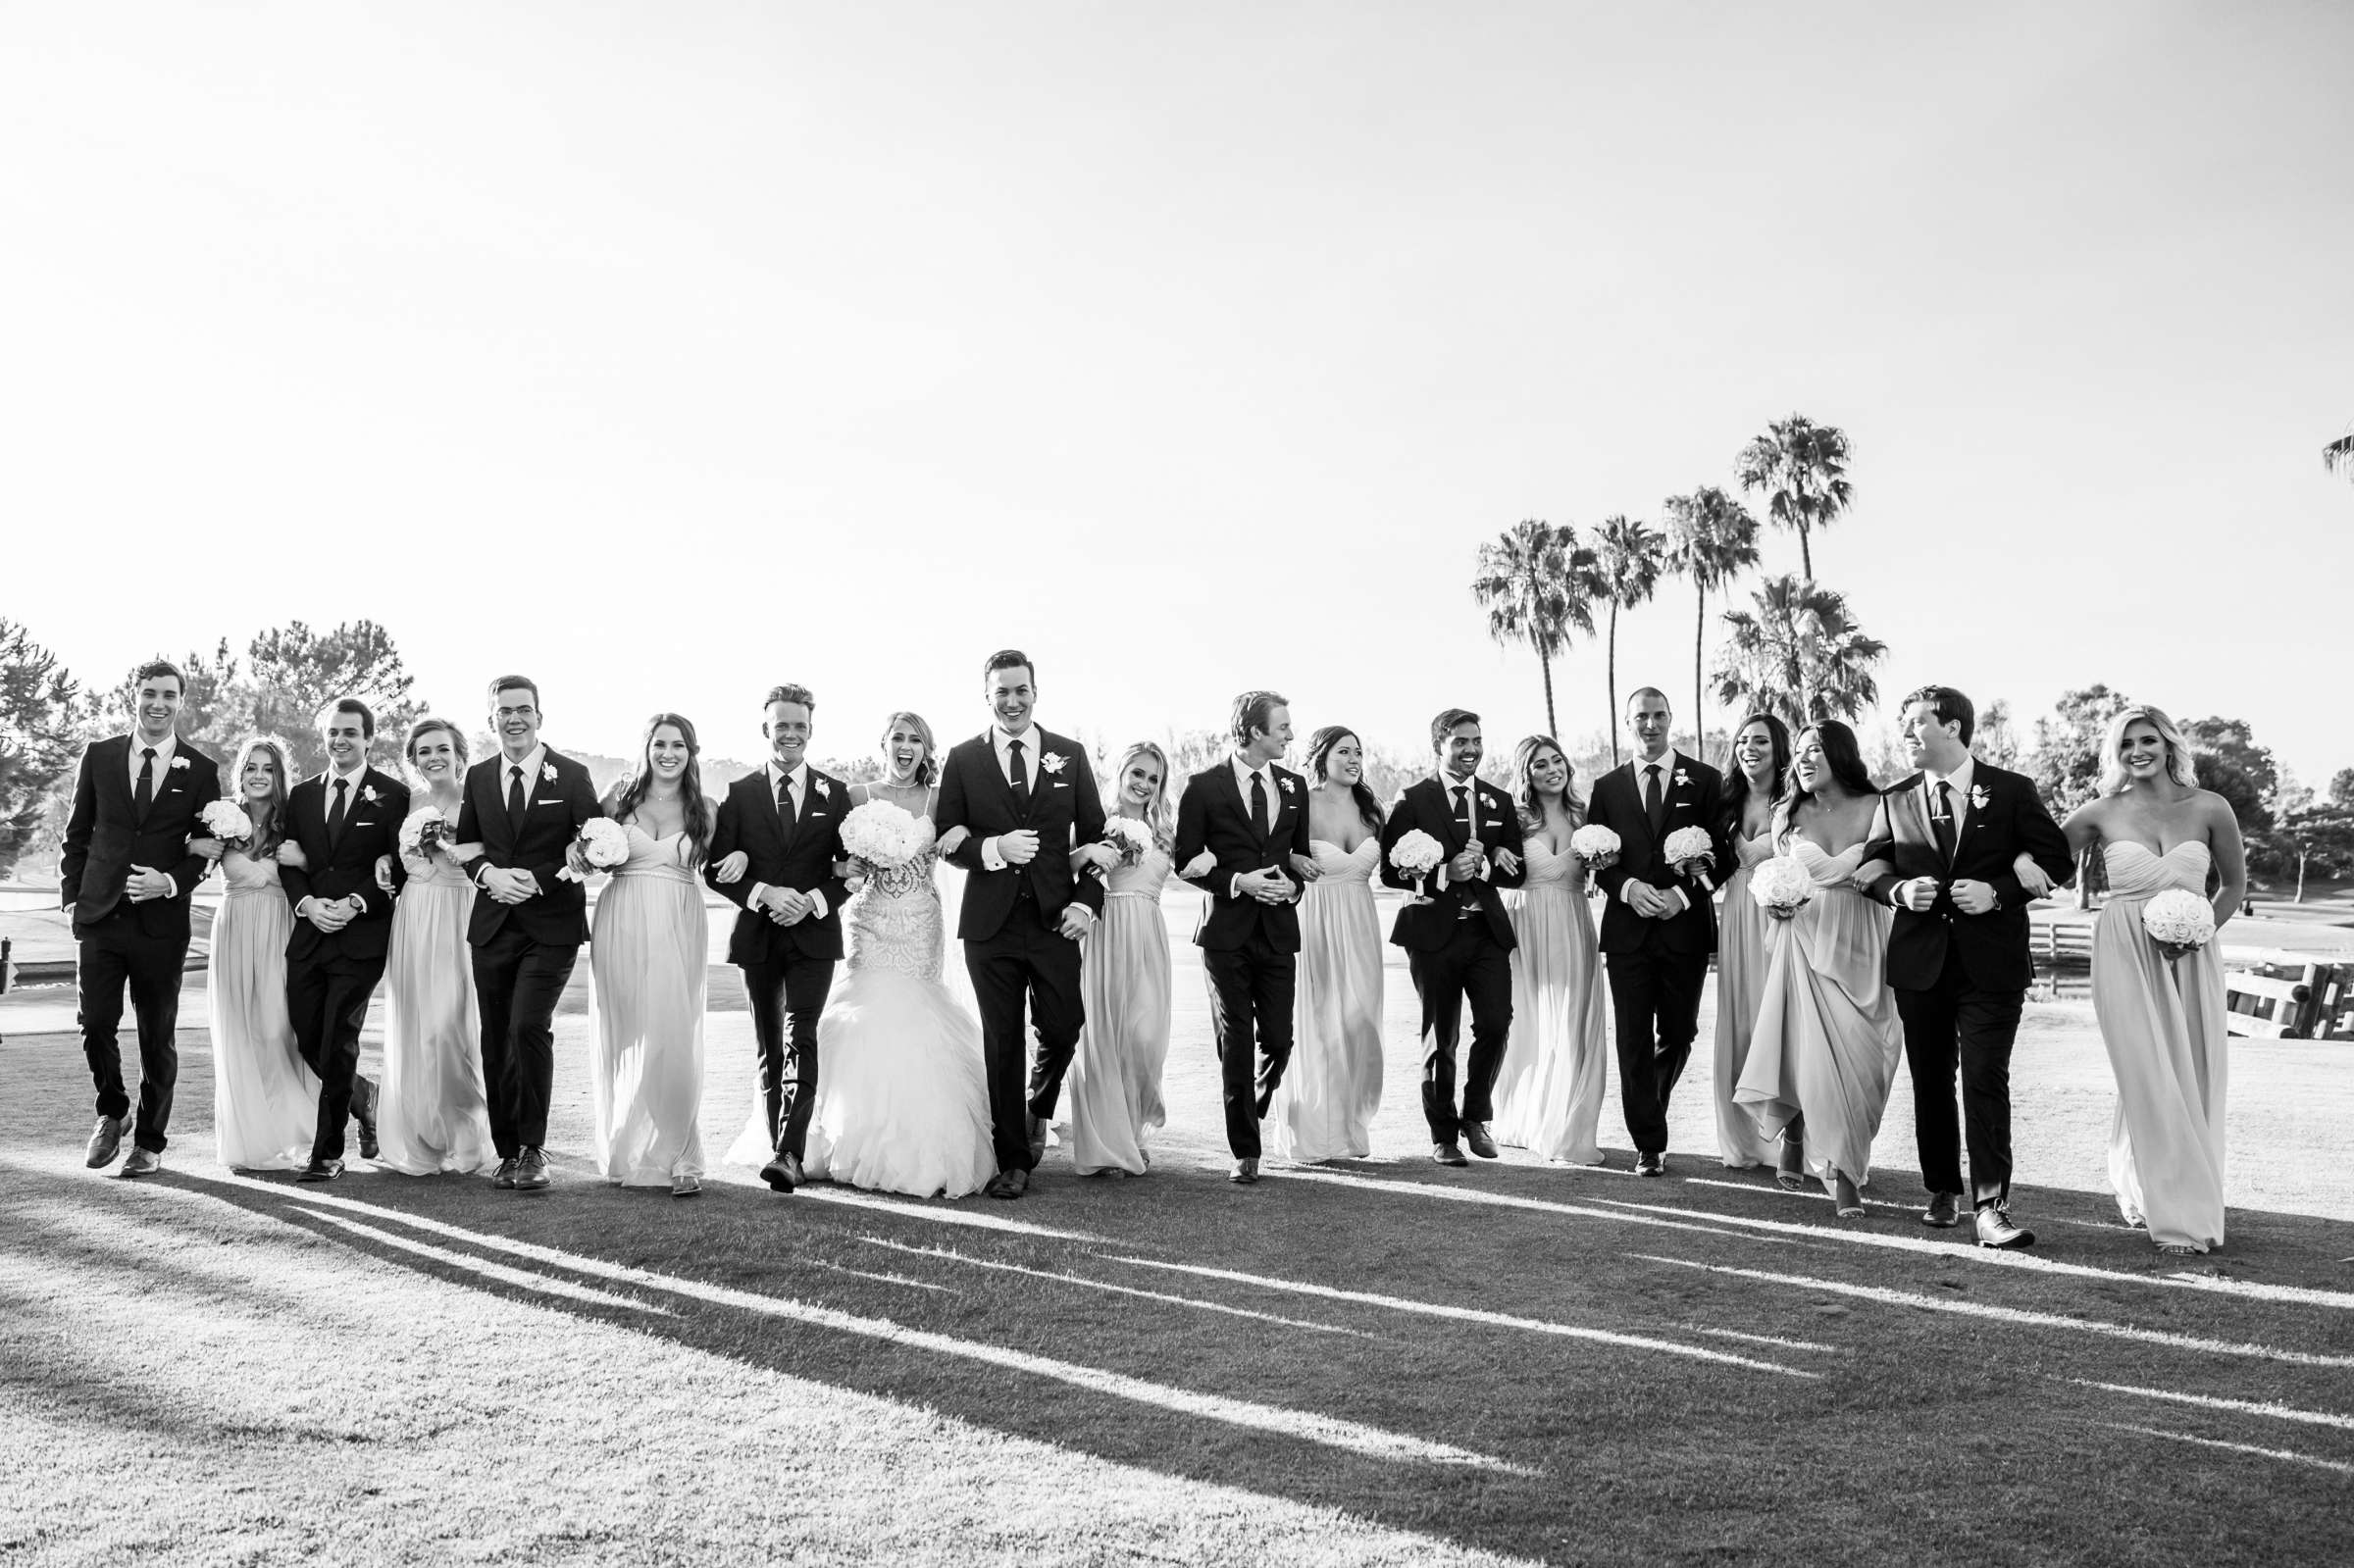 Fairbanks Ranch Country Club Wedding coordinated by Monarch Weddings, Gabriella and Kyle Wedding Photo #108 by True Photography